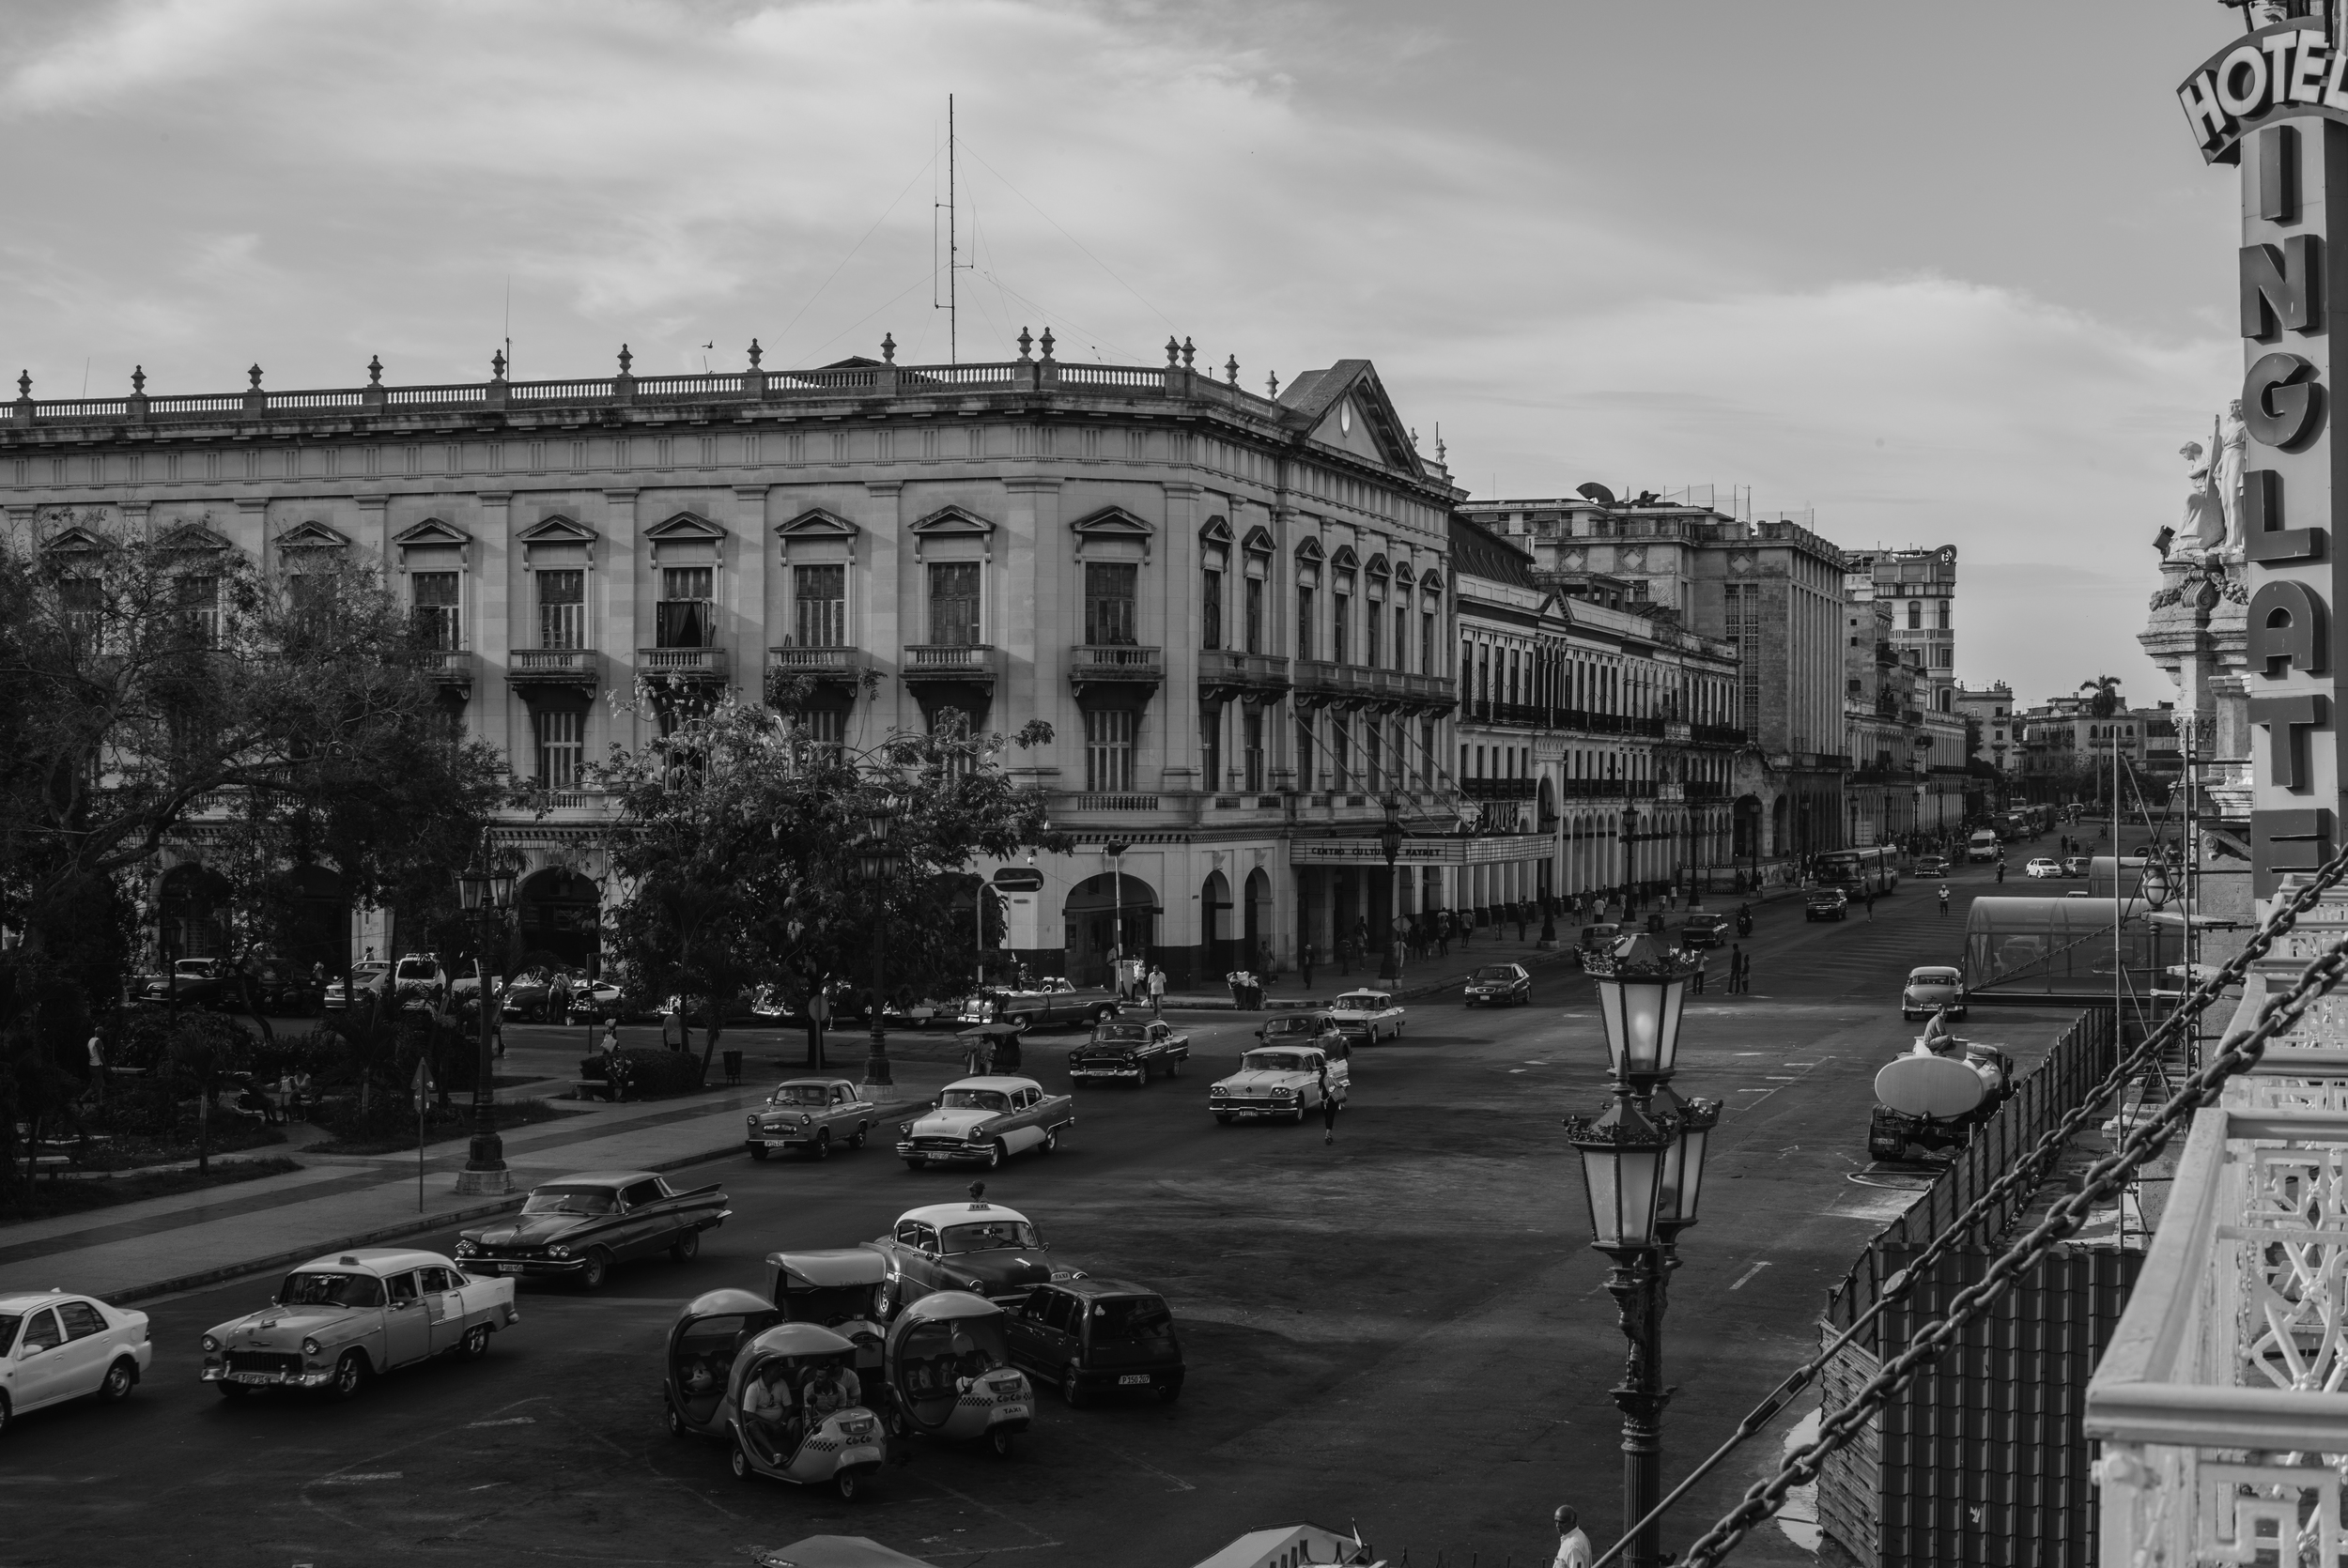 View from the Hotel Inglaterra, the oldest hotel in Cuba.